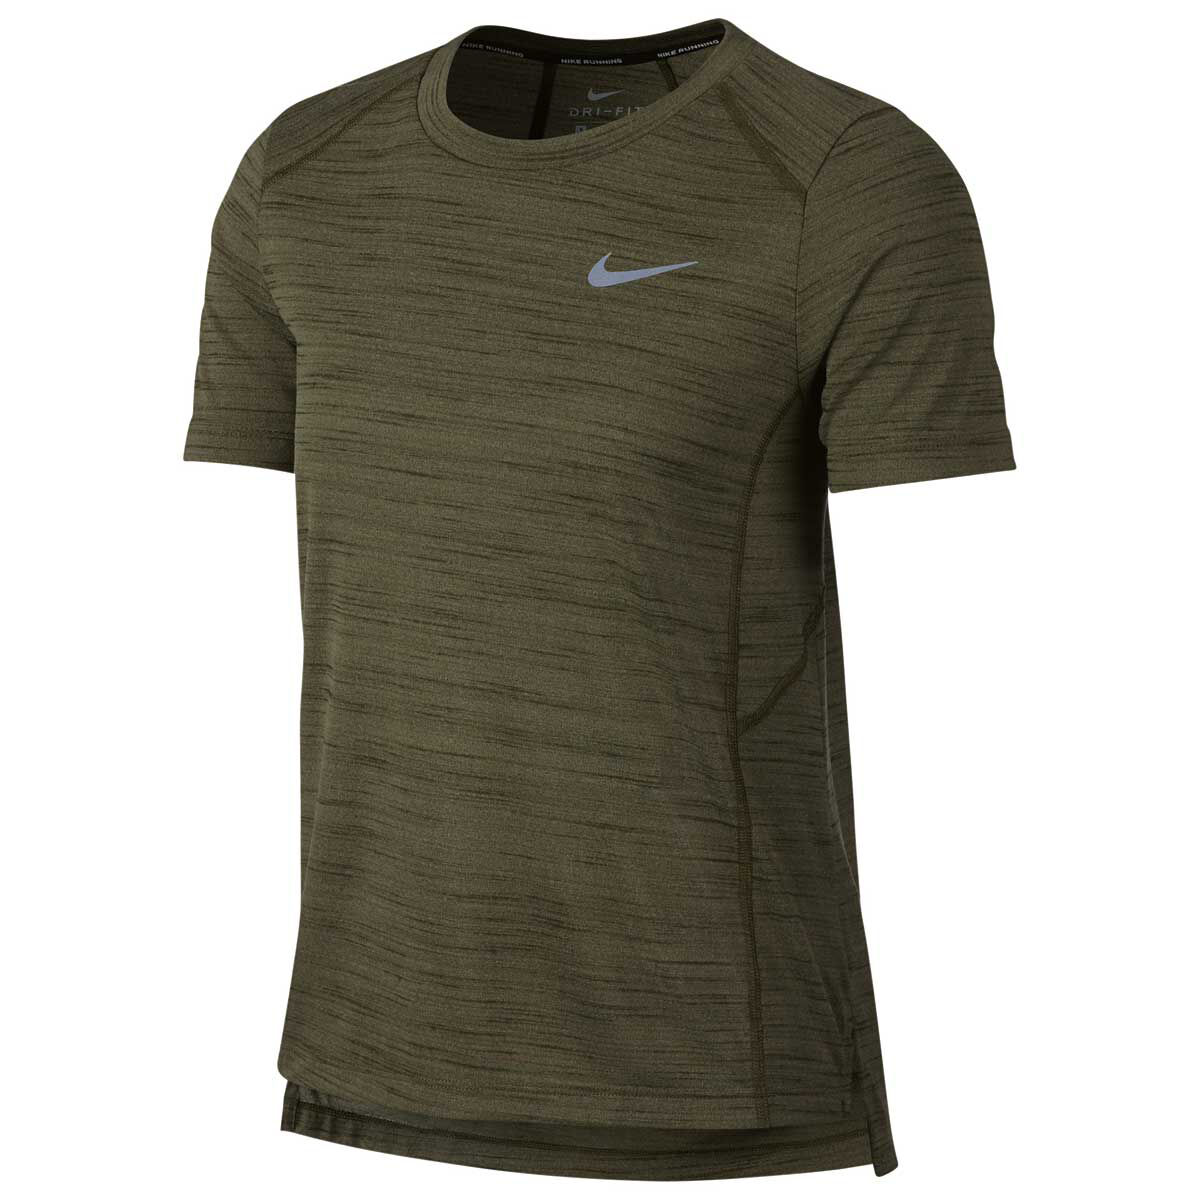 Clearance Womens Nike Plus Active Tops, Clothing   Kohl's